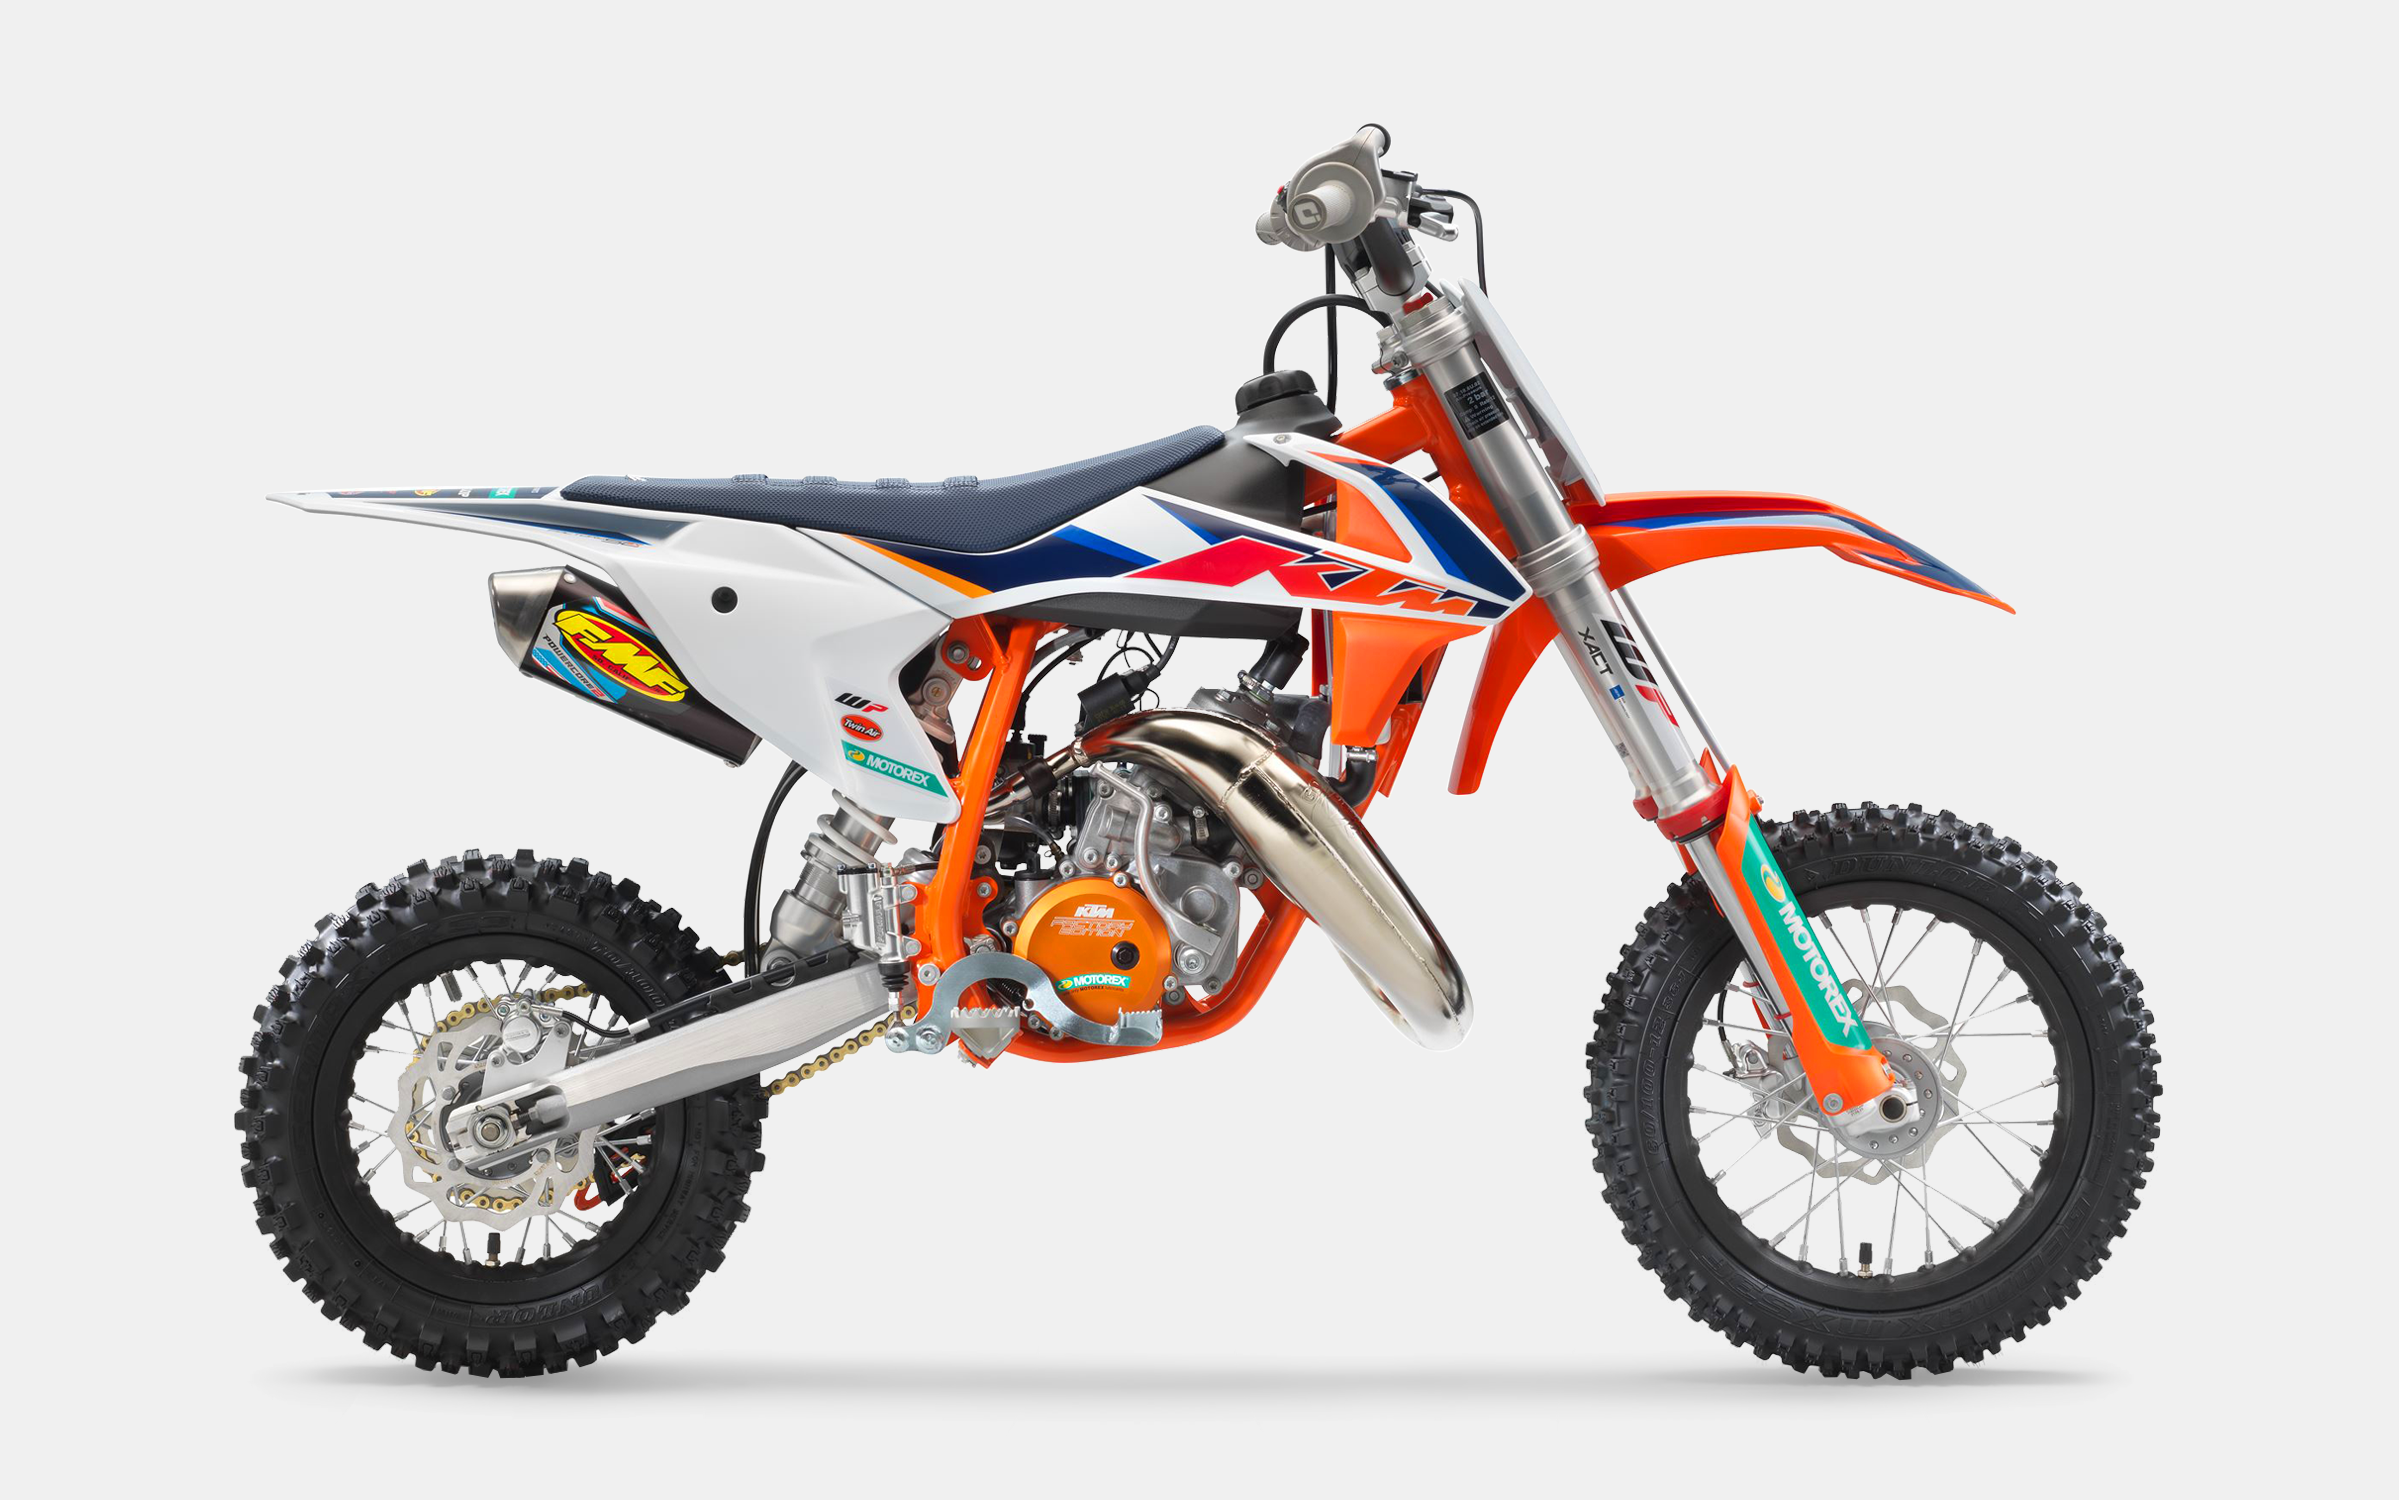 KTM 50 SX Factory Edition Motorcycle